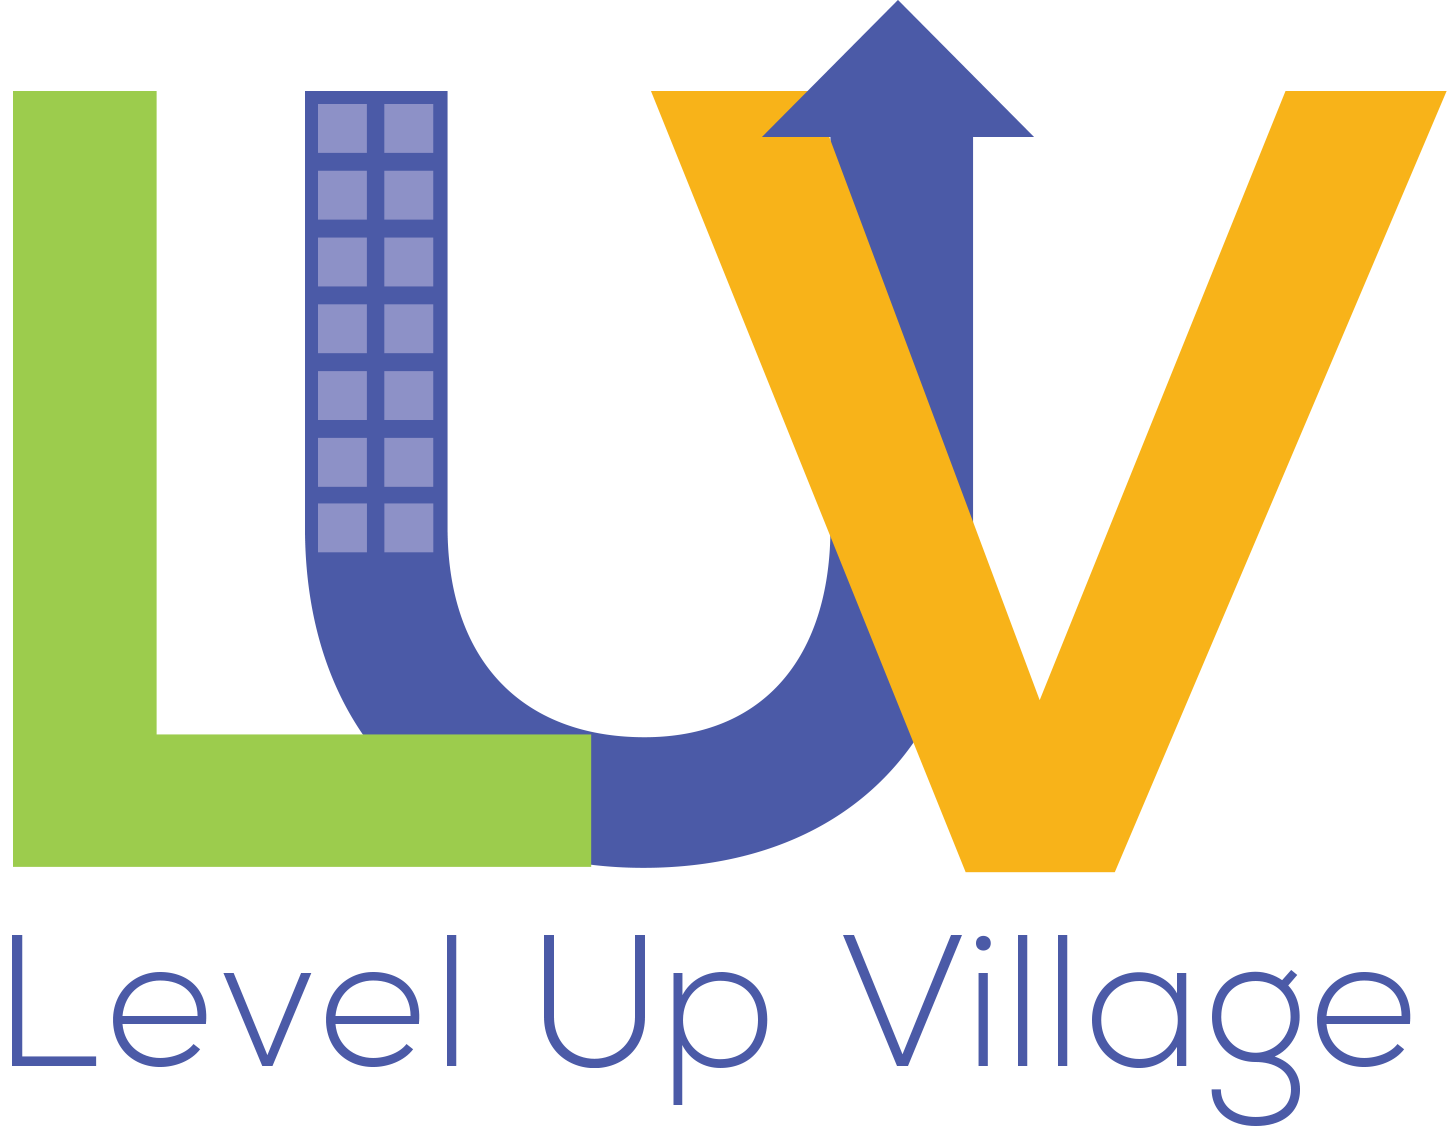 LEVEL UP VILLAGE UNVEILS NEW GLOBAL ENRICHMENT COURSES IN MUSIC, LITERATURE AND LANGUAGE